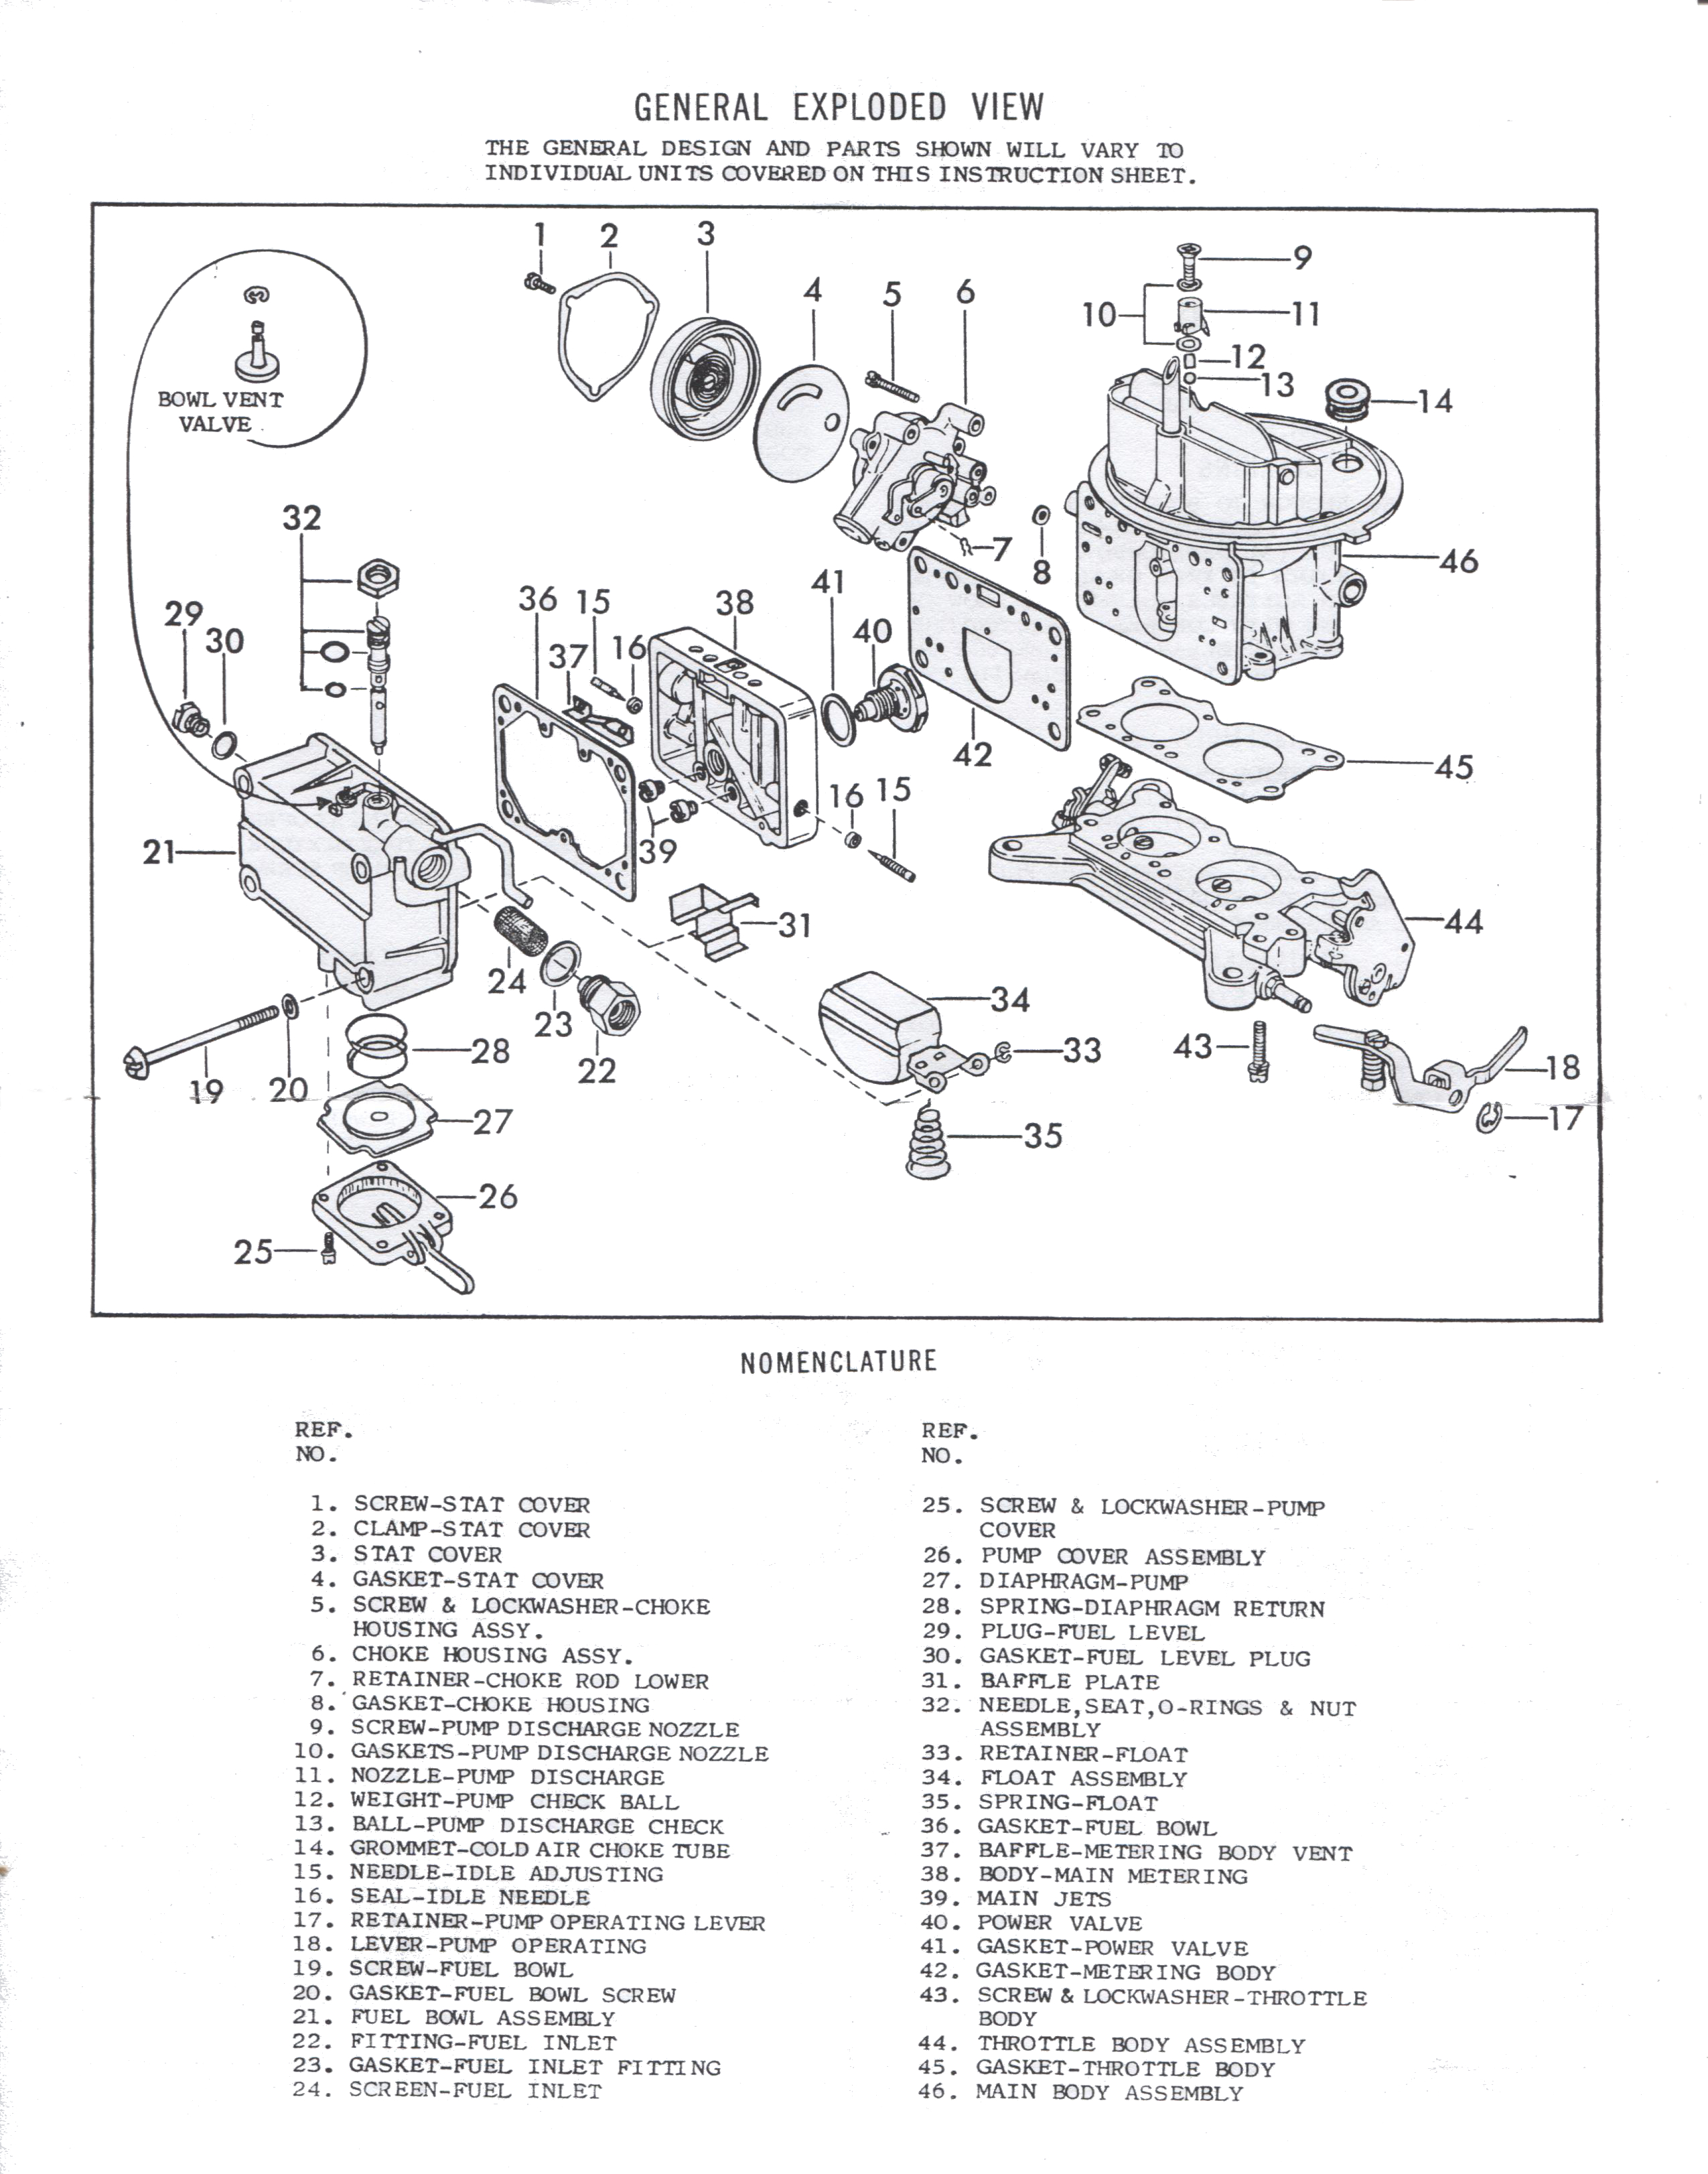 Holley 2300 Instruction Sheet